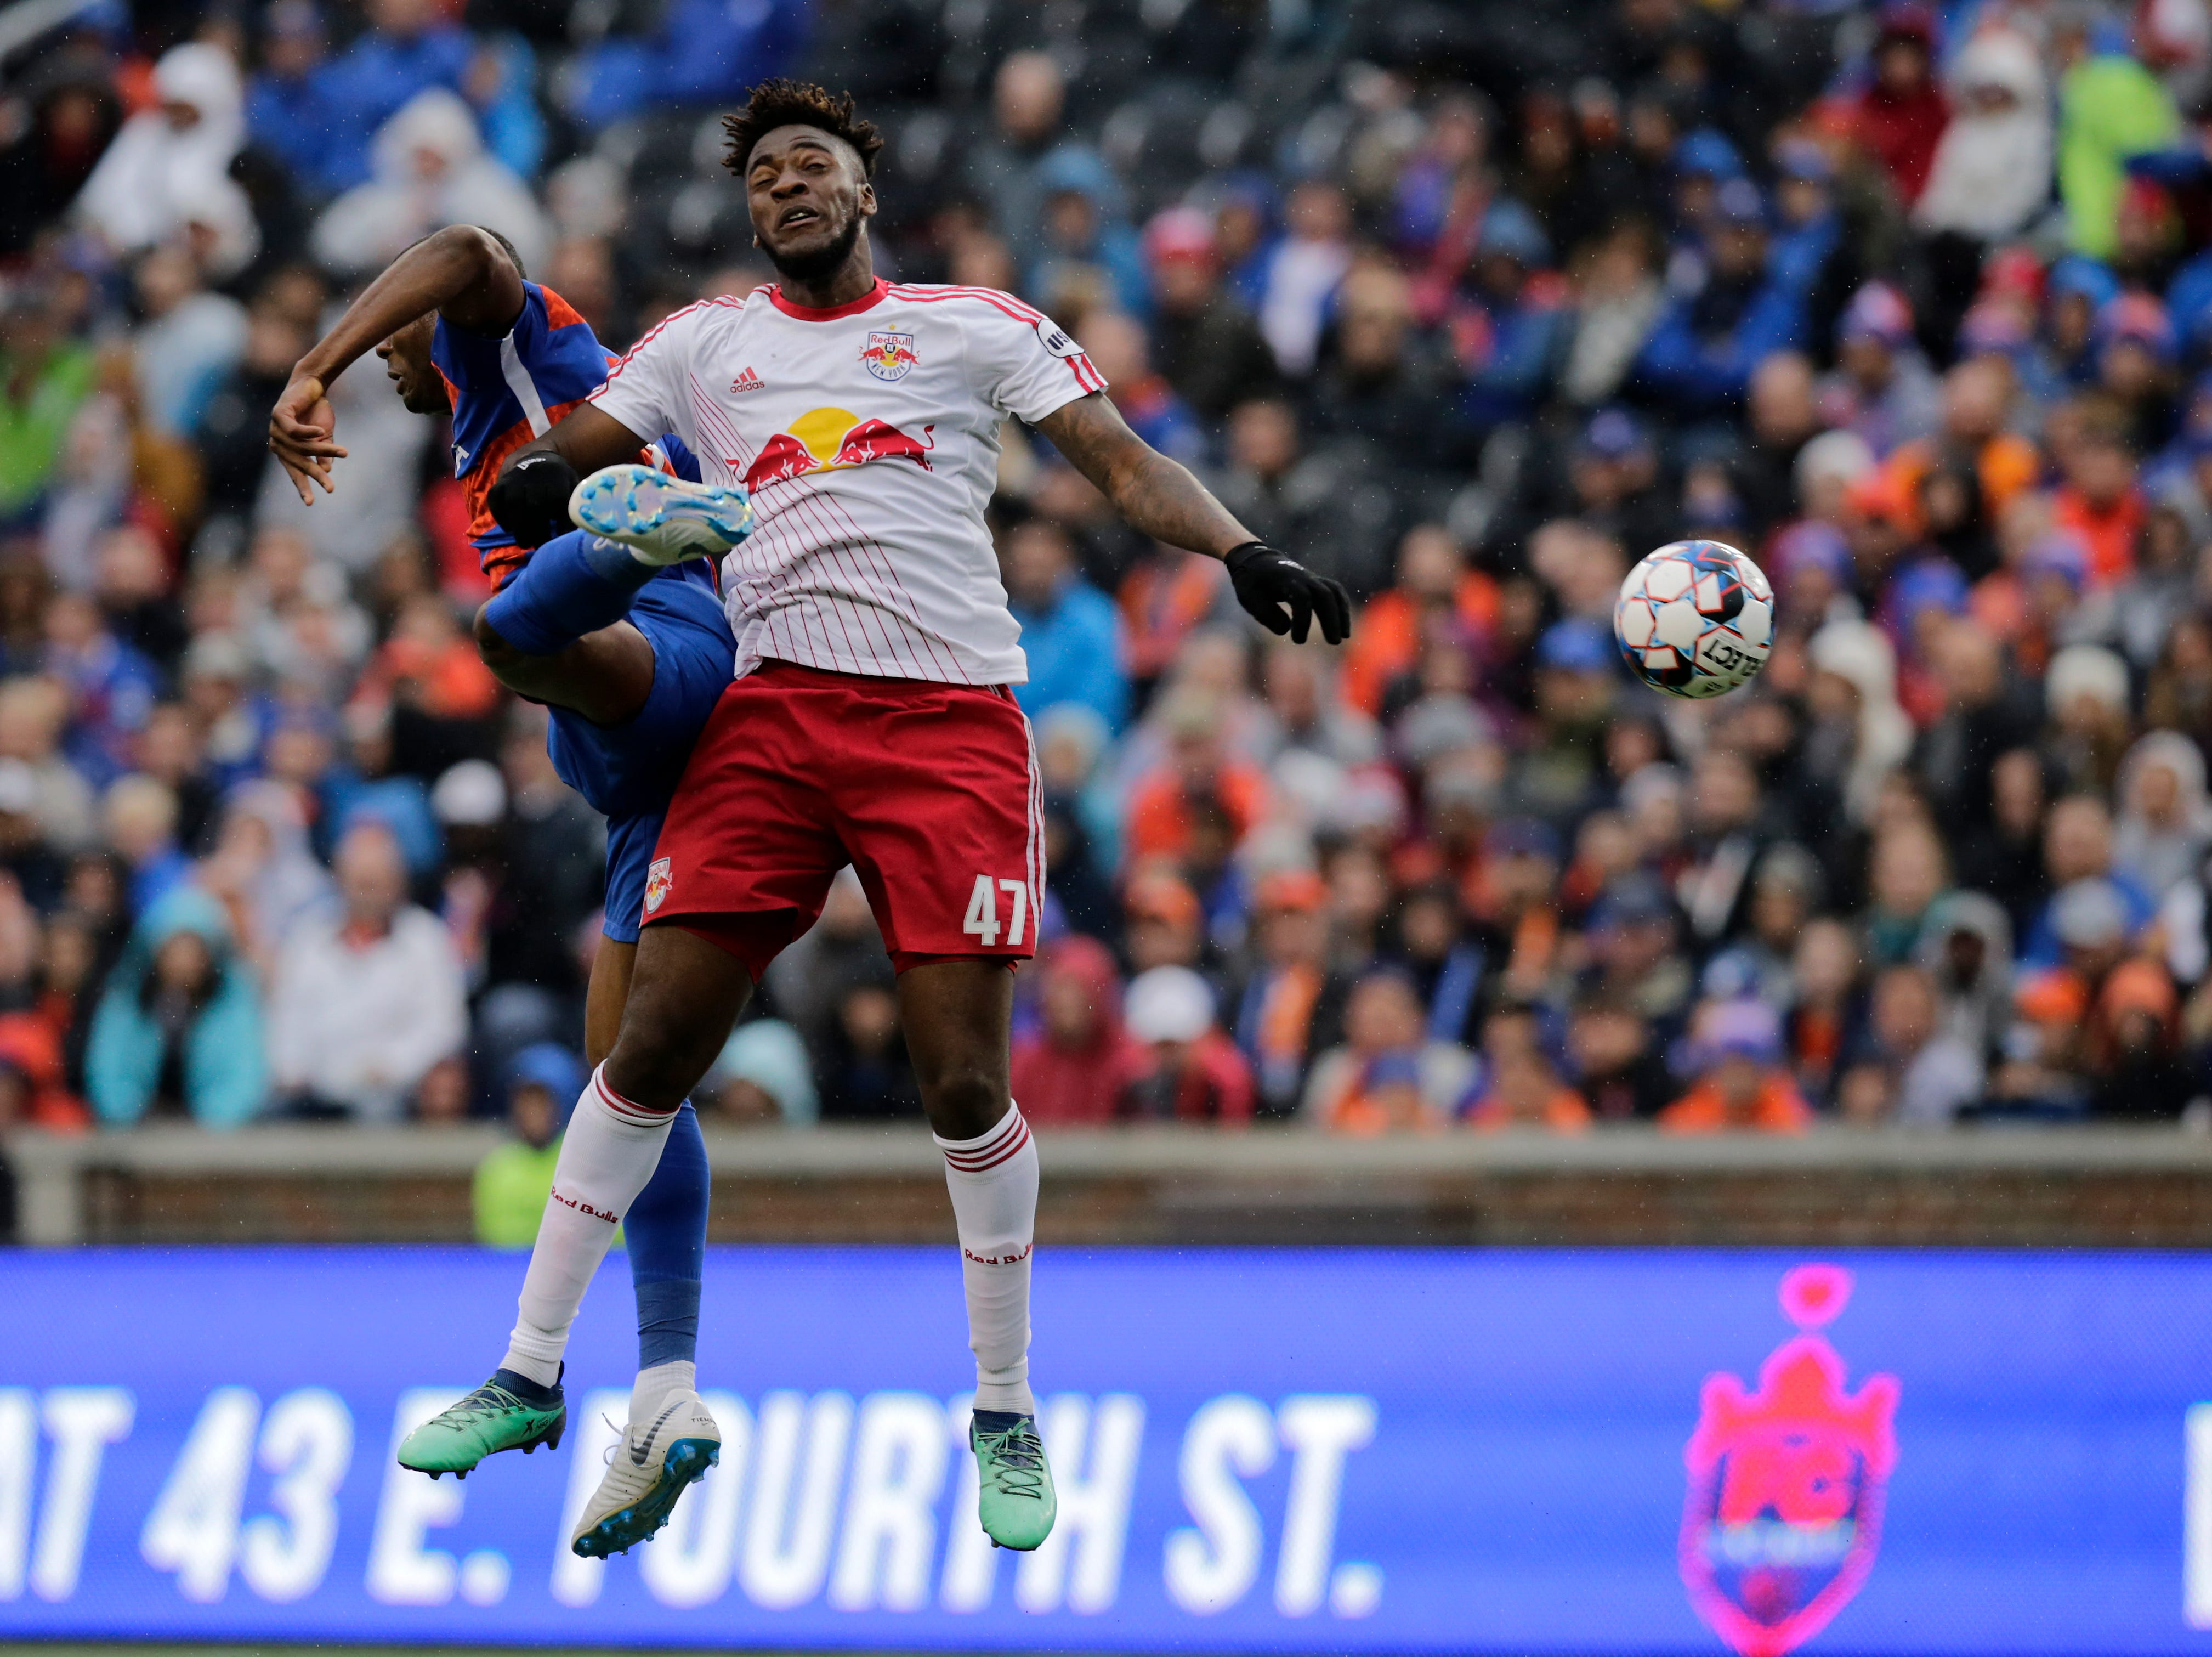 FC Cincinnati forward Fanendo Adi (9) and New York Red Bulls II defender Hassan Ndam (47) collide over a ball in the first half of the USL Eastern Conference Semifinal match between the FC Cincinnati and the New York Red Bulls II at Nippert Stadium in Cincinnati on Tuesday, Oct. 16, 2018. New York Red Bulls II led 1-0 at half time.